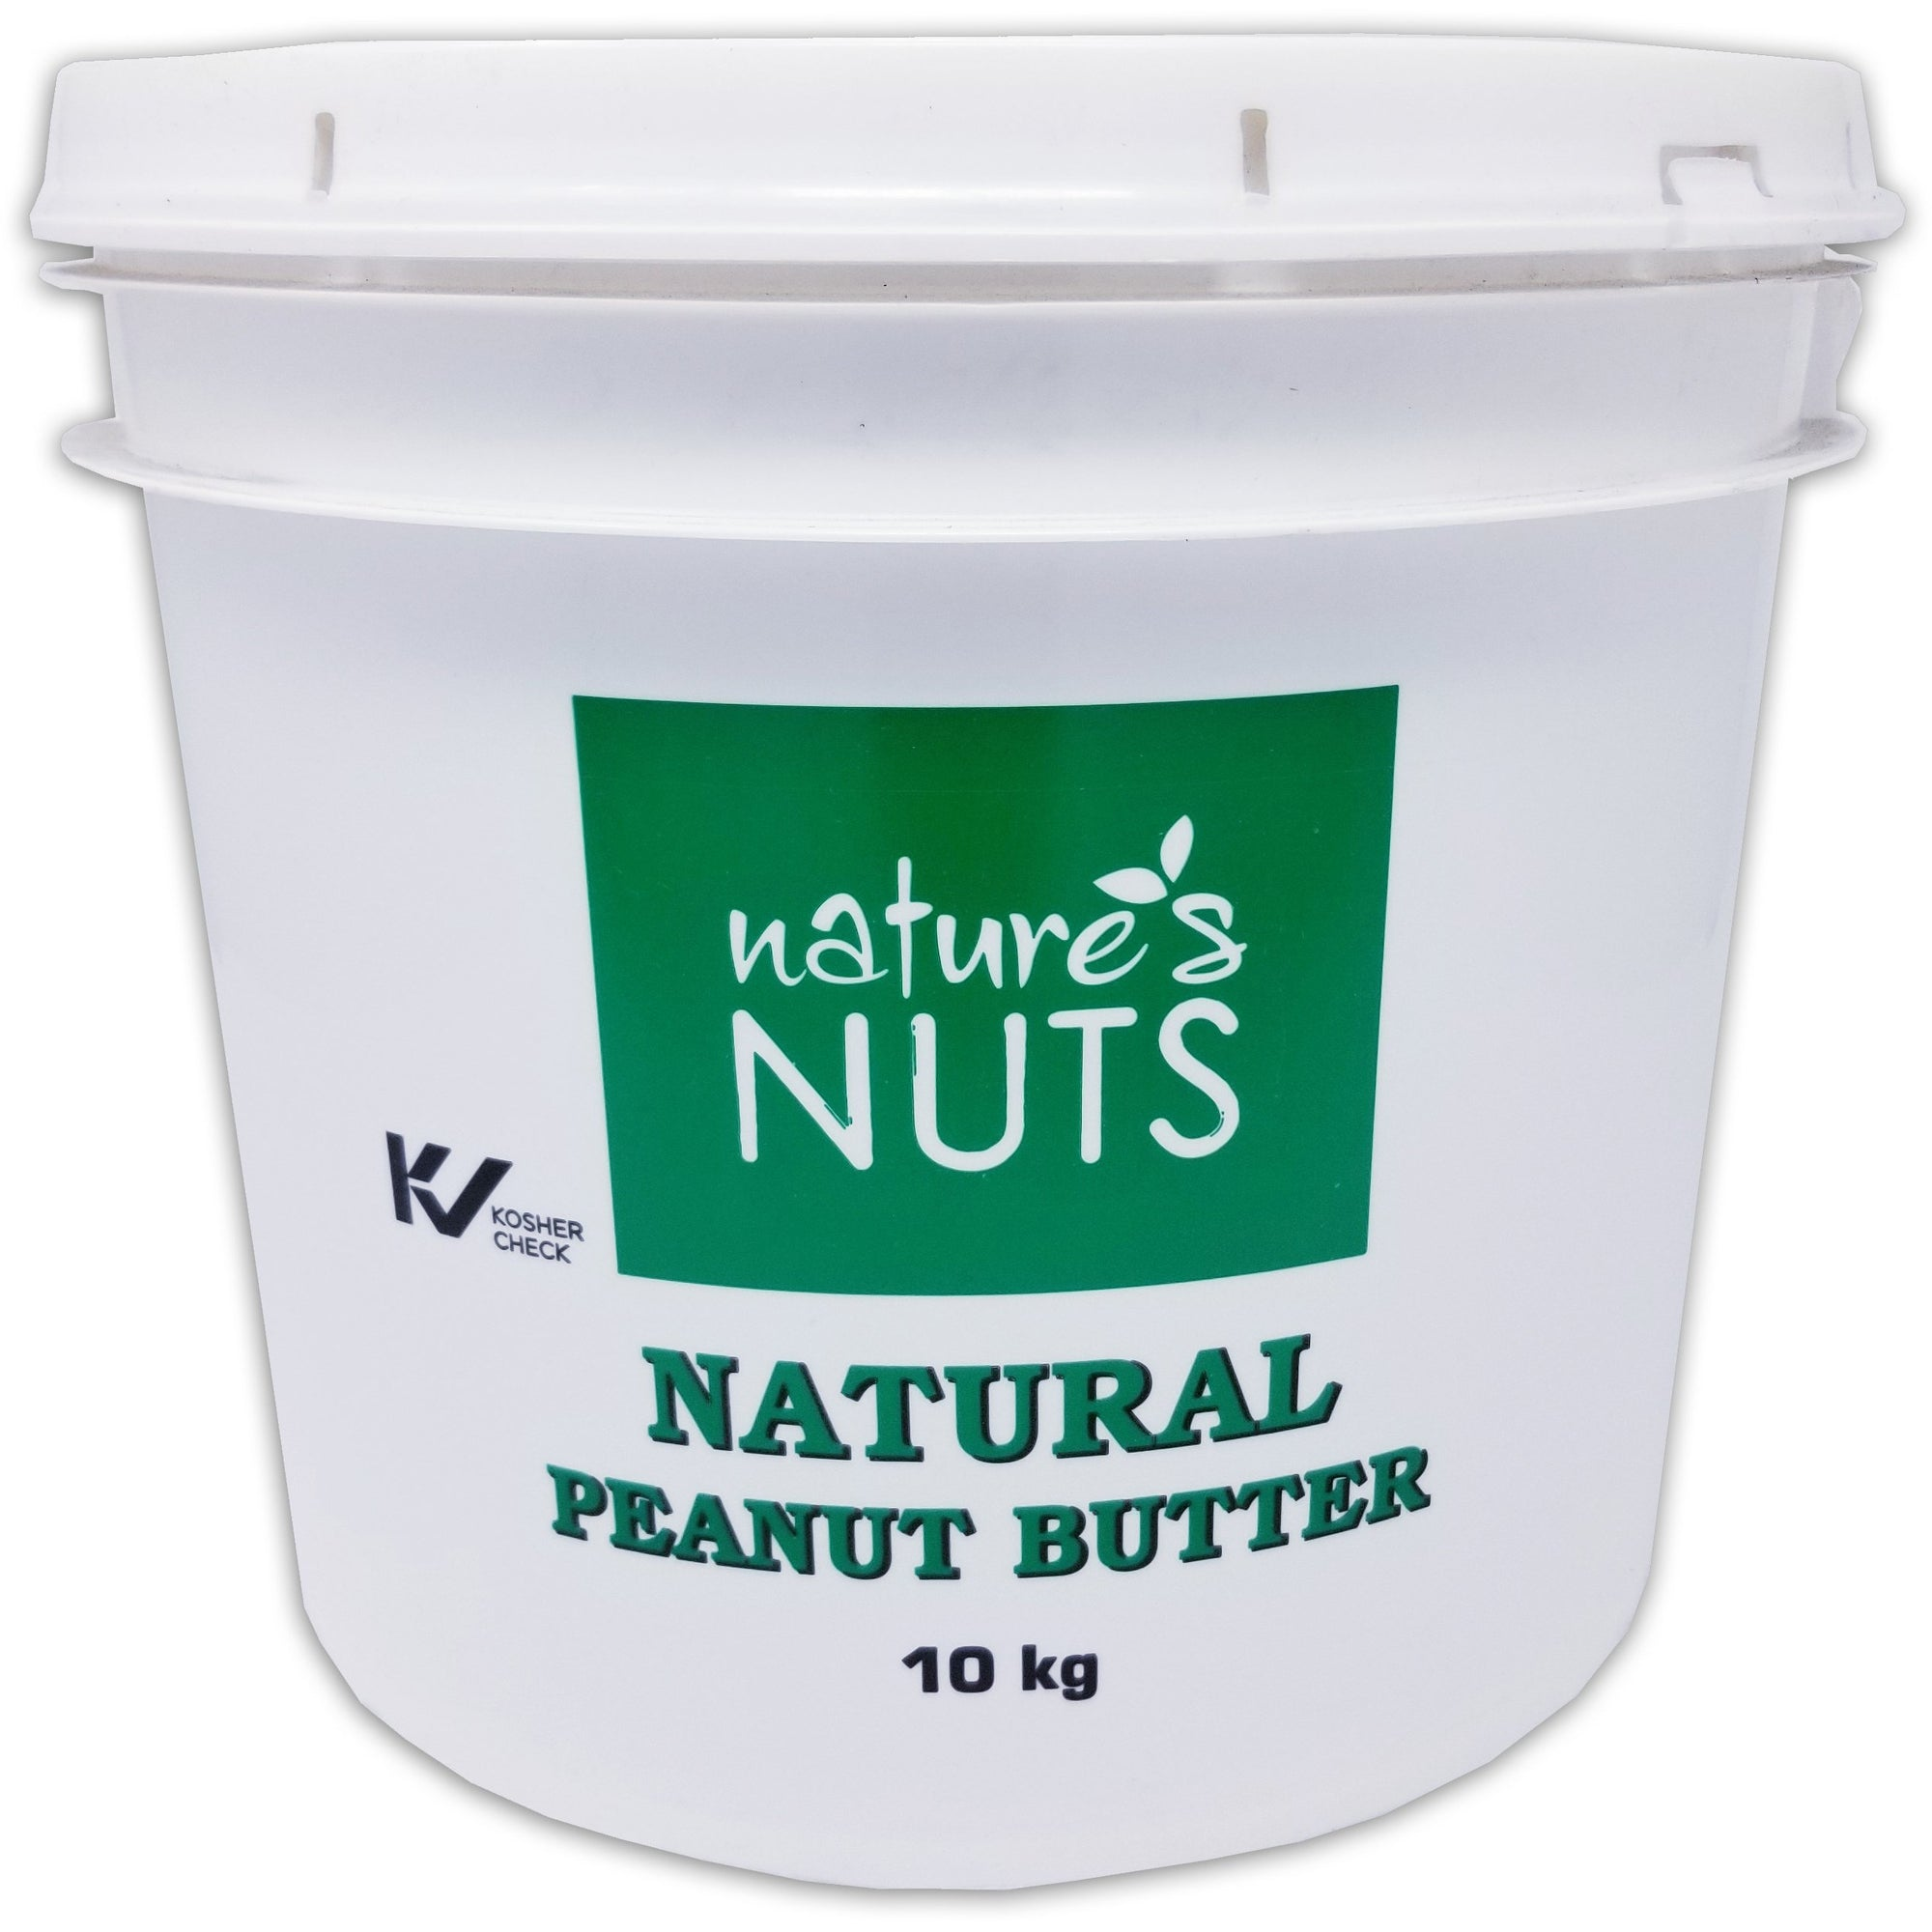 Natural Peanut Butter 10 Kg